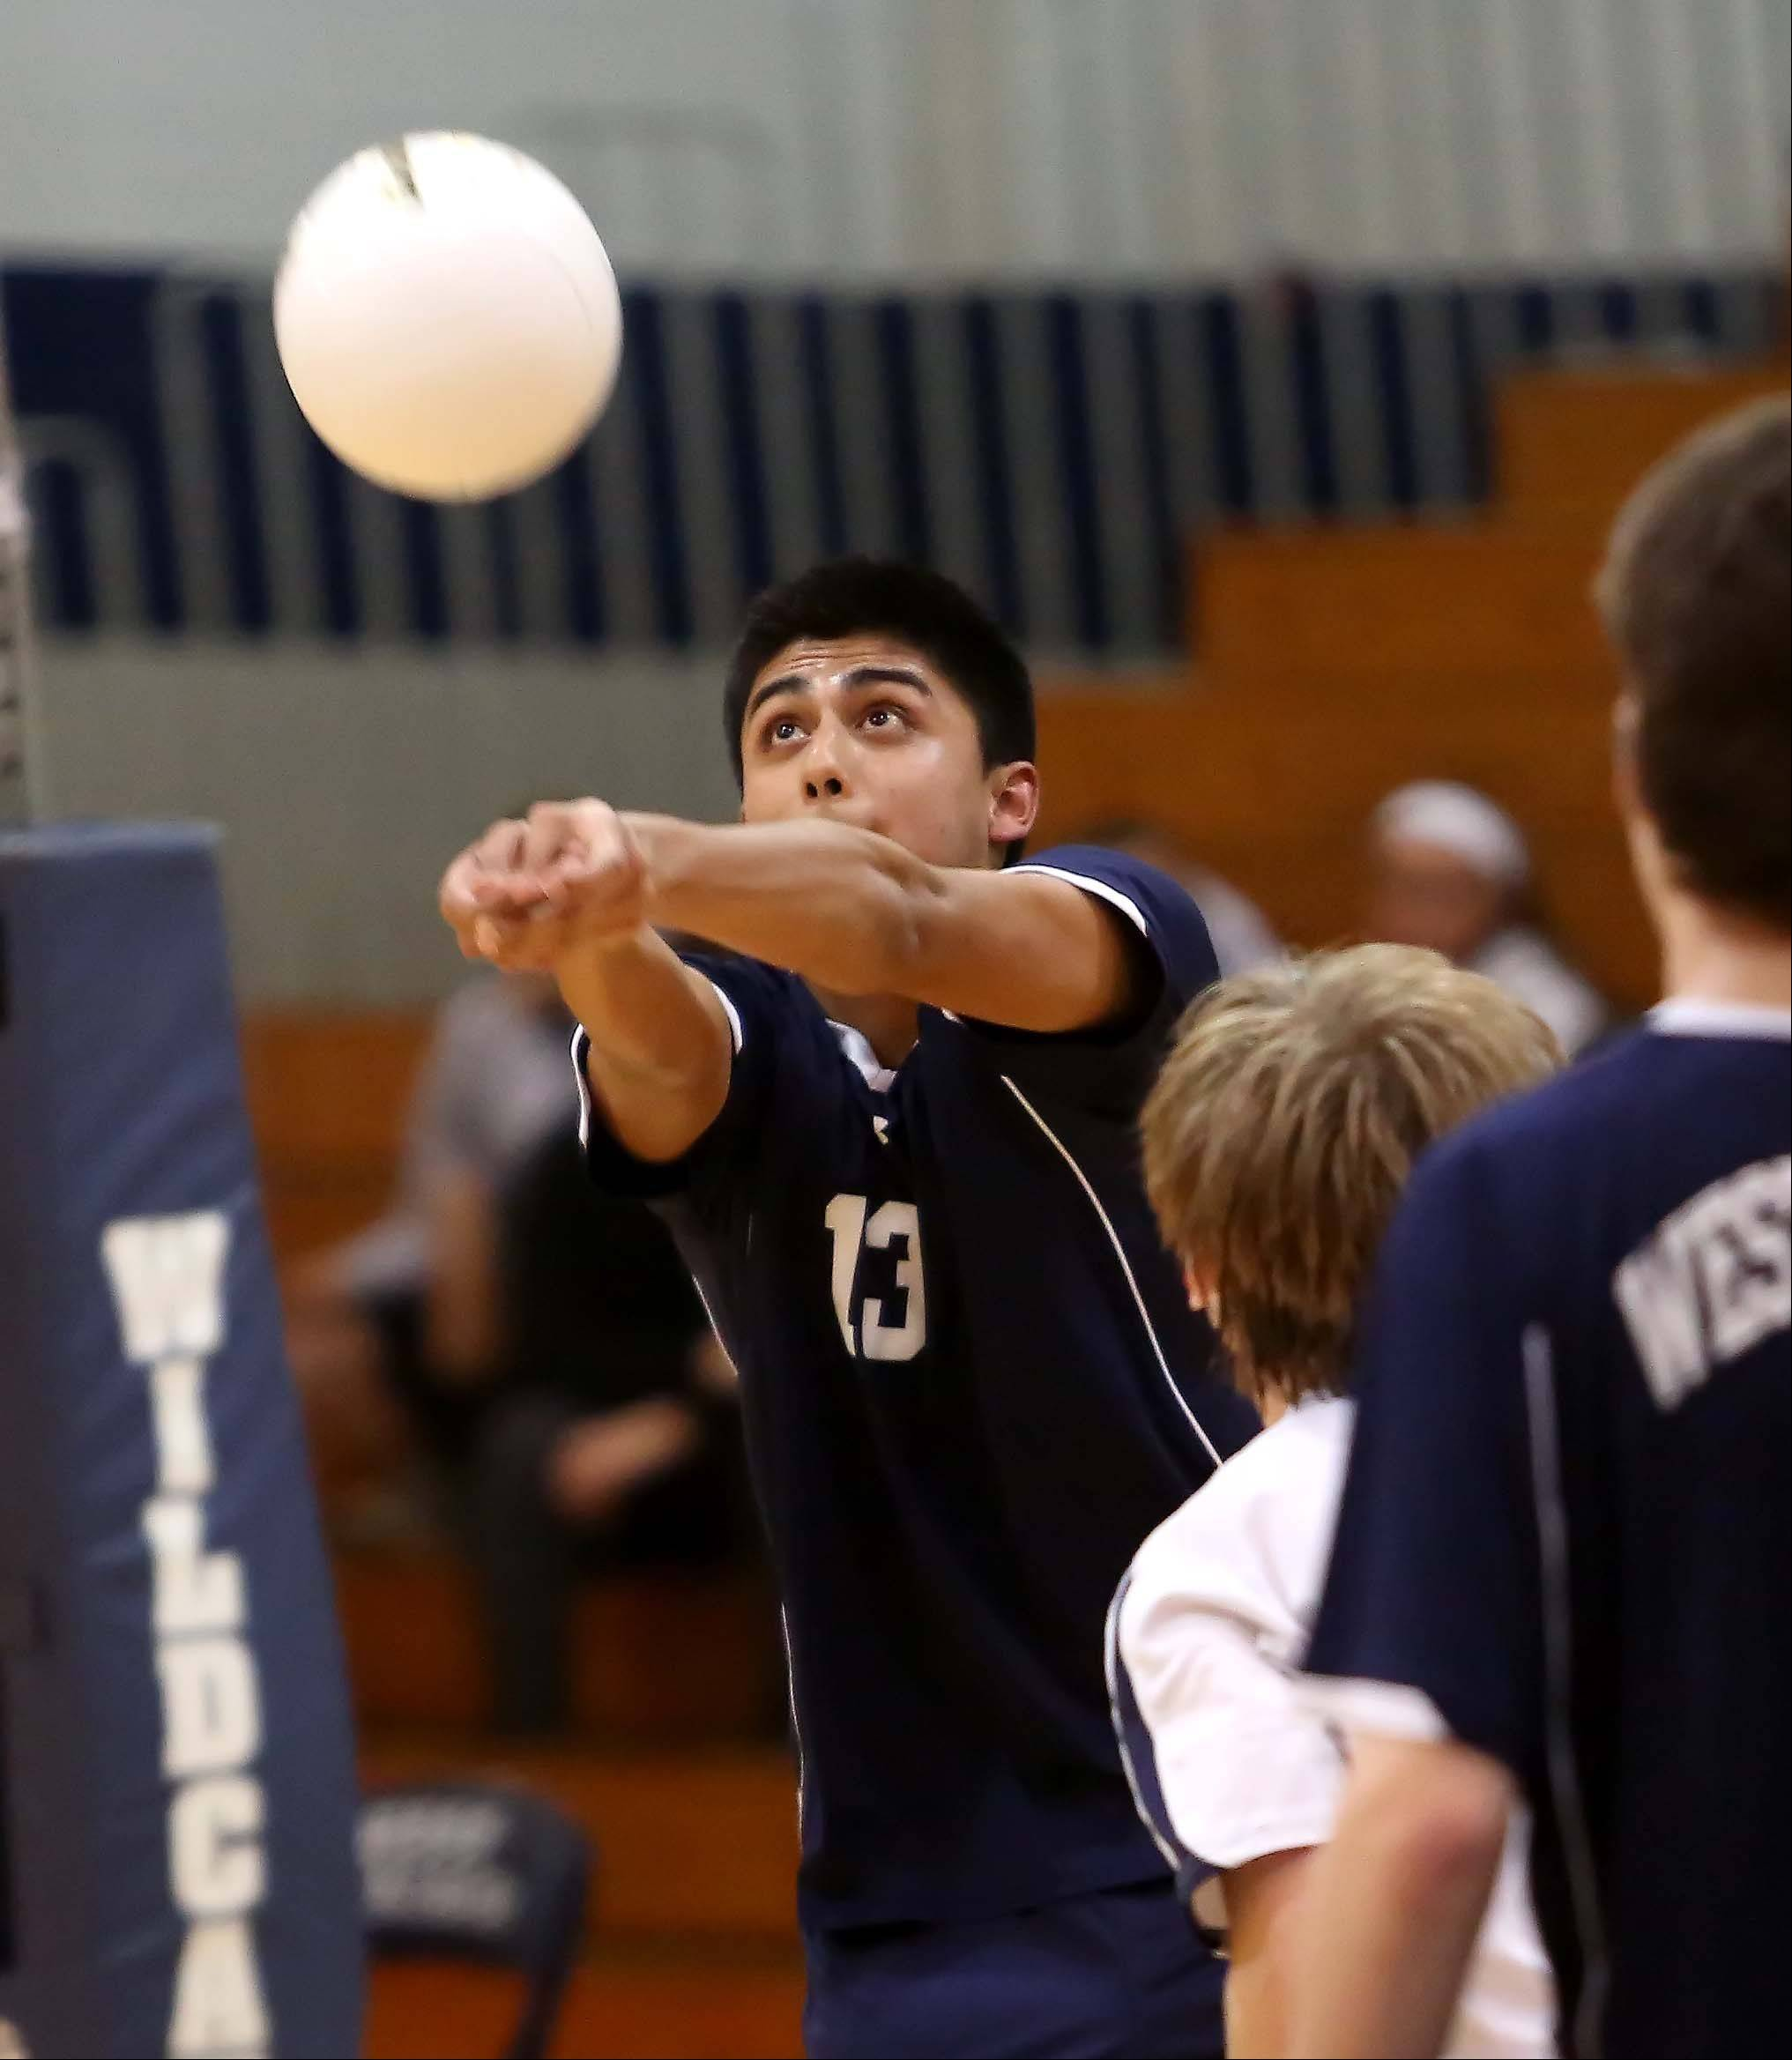 West Chicago's Danny Amaro returns the ball against Naperville North Tuesday in West Chicago.